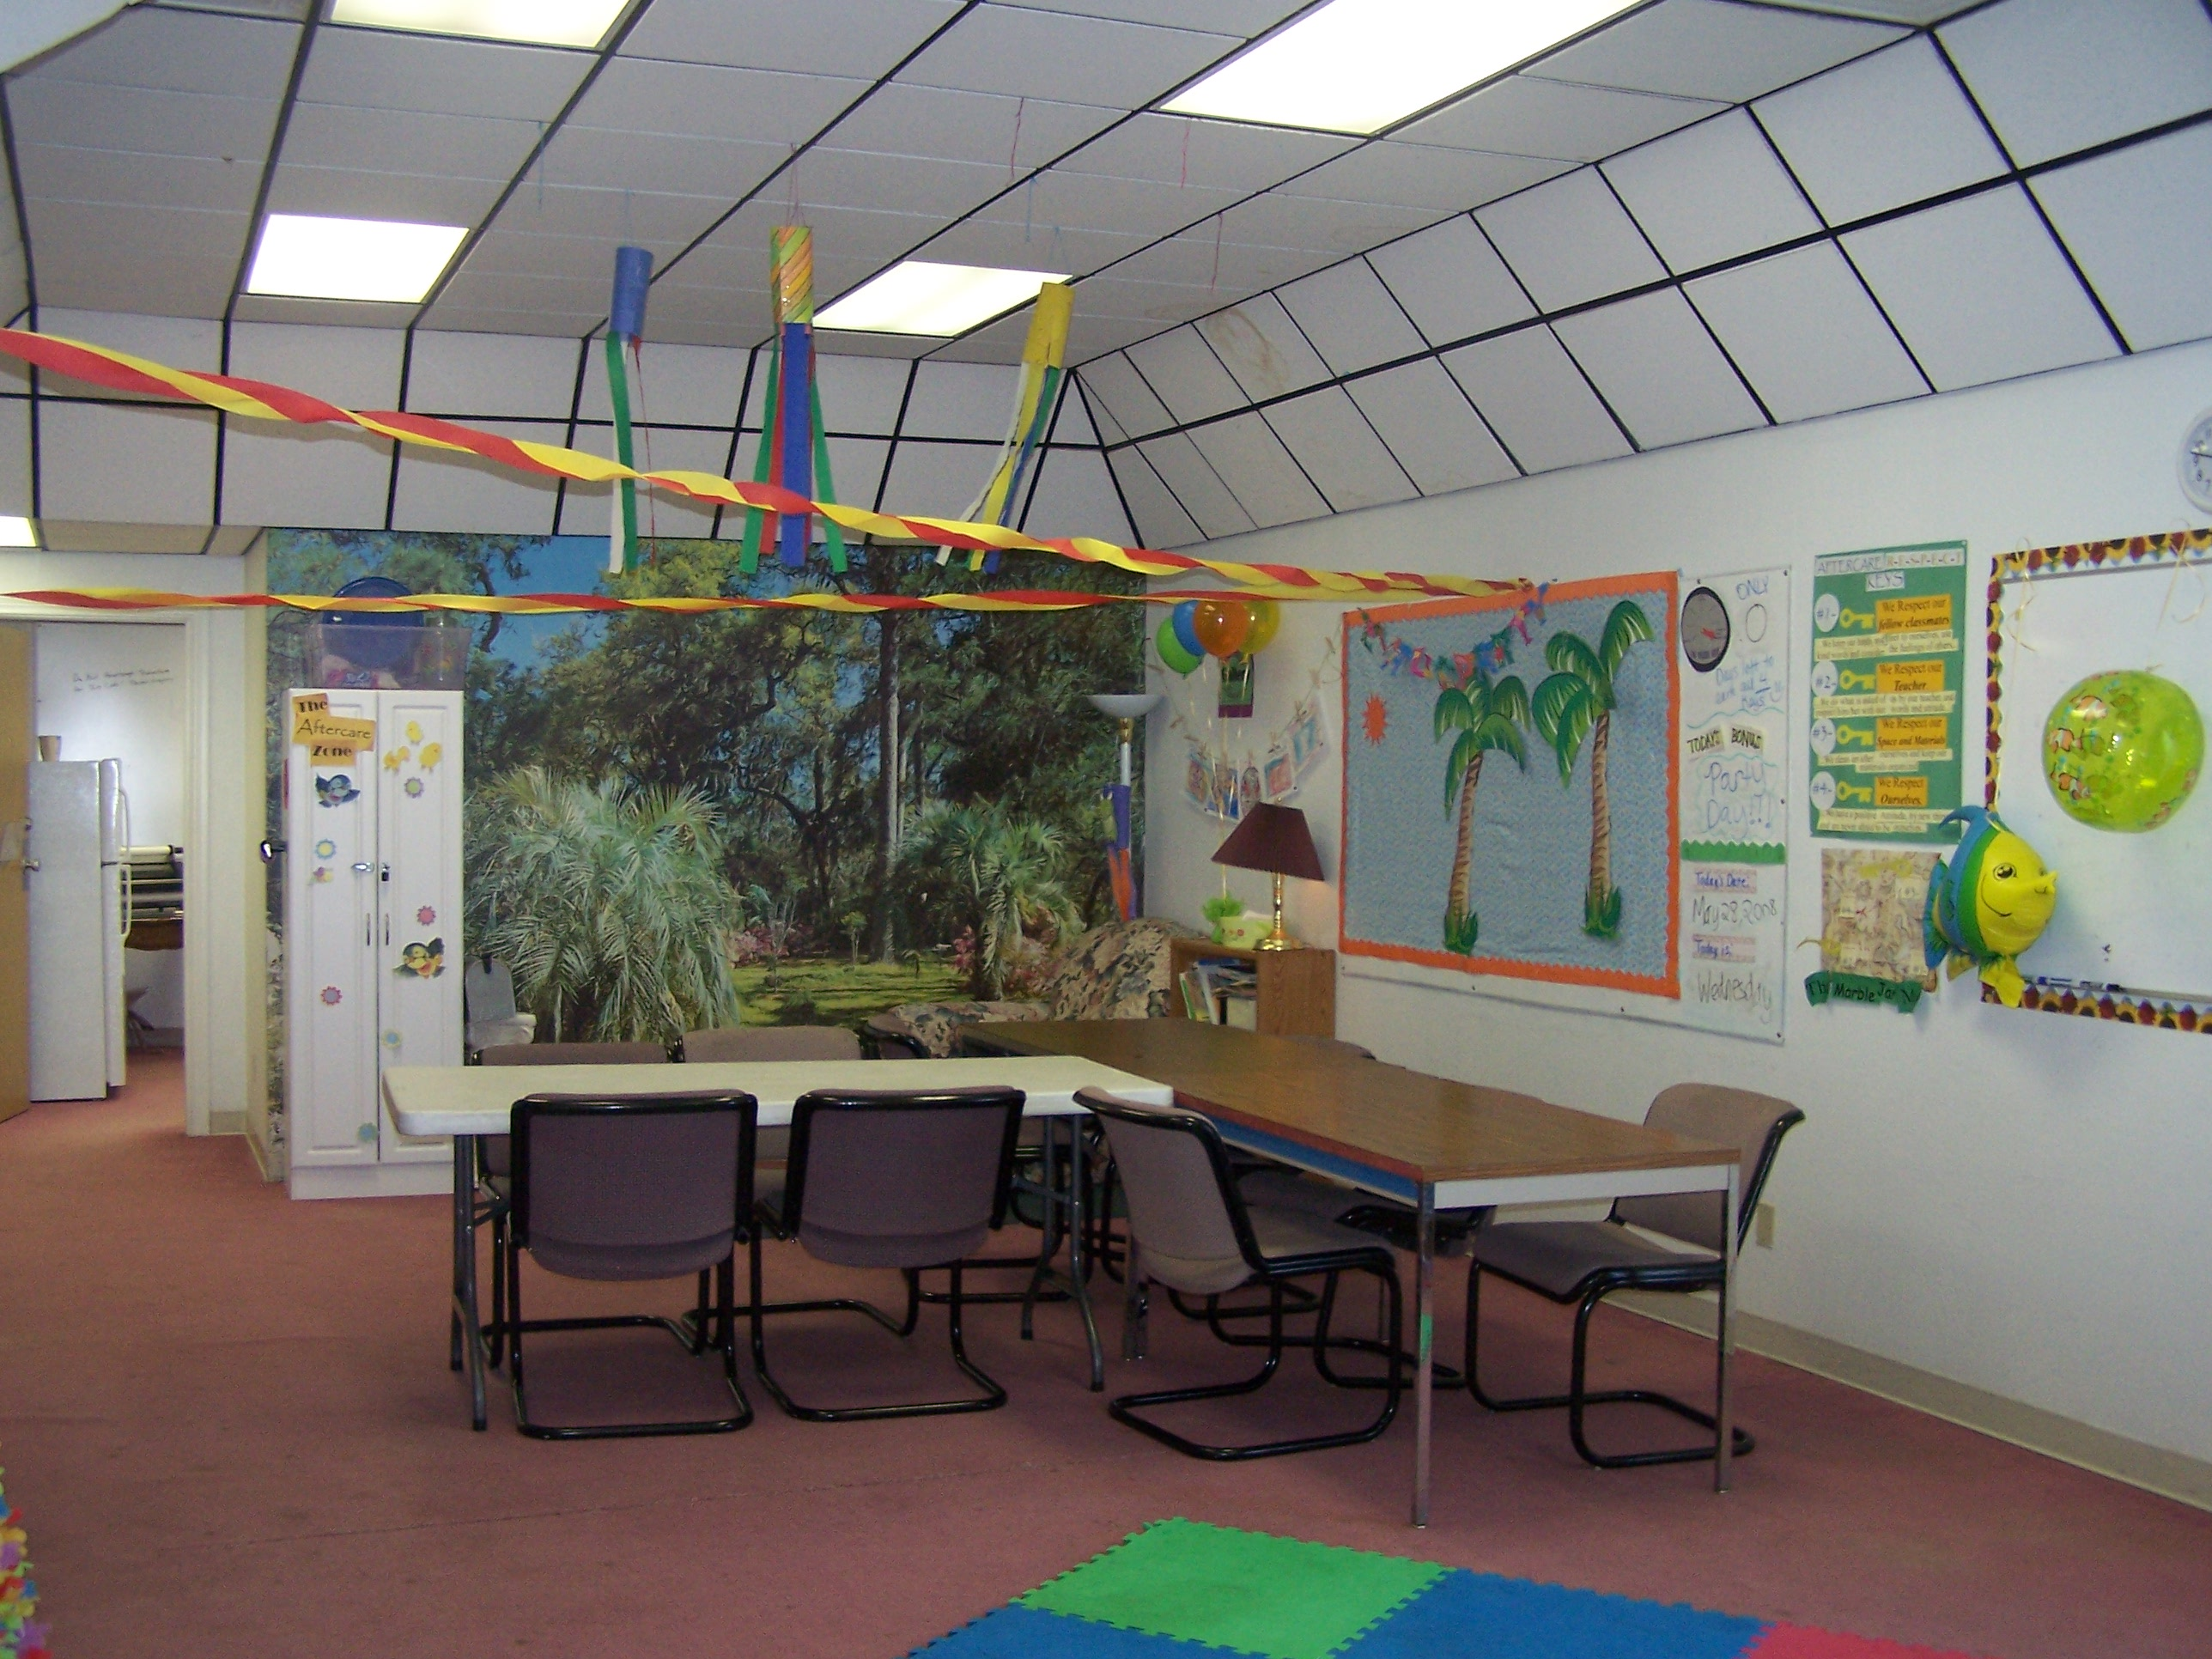 Classroom Wall Design Ideas : Preschool classroom decorating ideas dream house experience